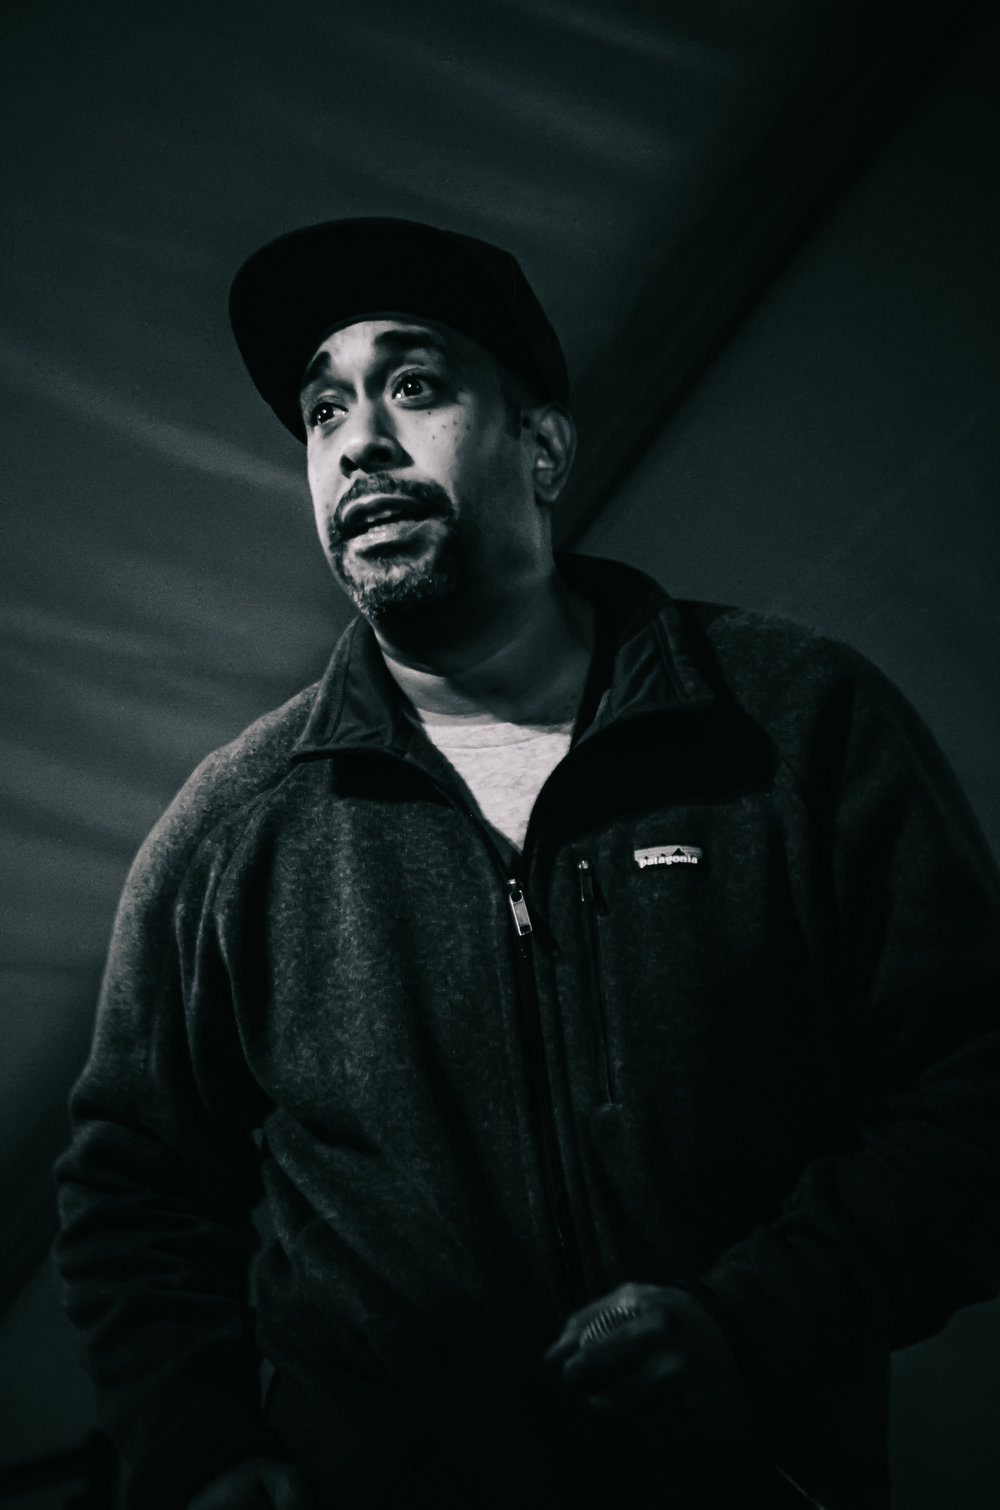 4_The_Beatnuts_Rifflandia-Timothy_Nguyen-20160917 (6 of 16).jpg